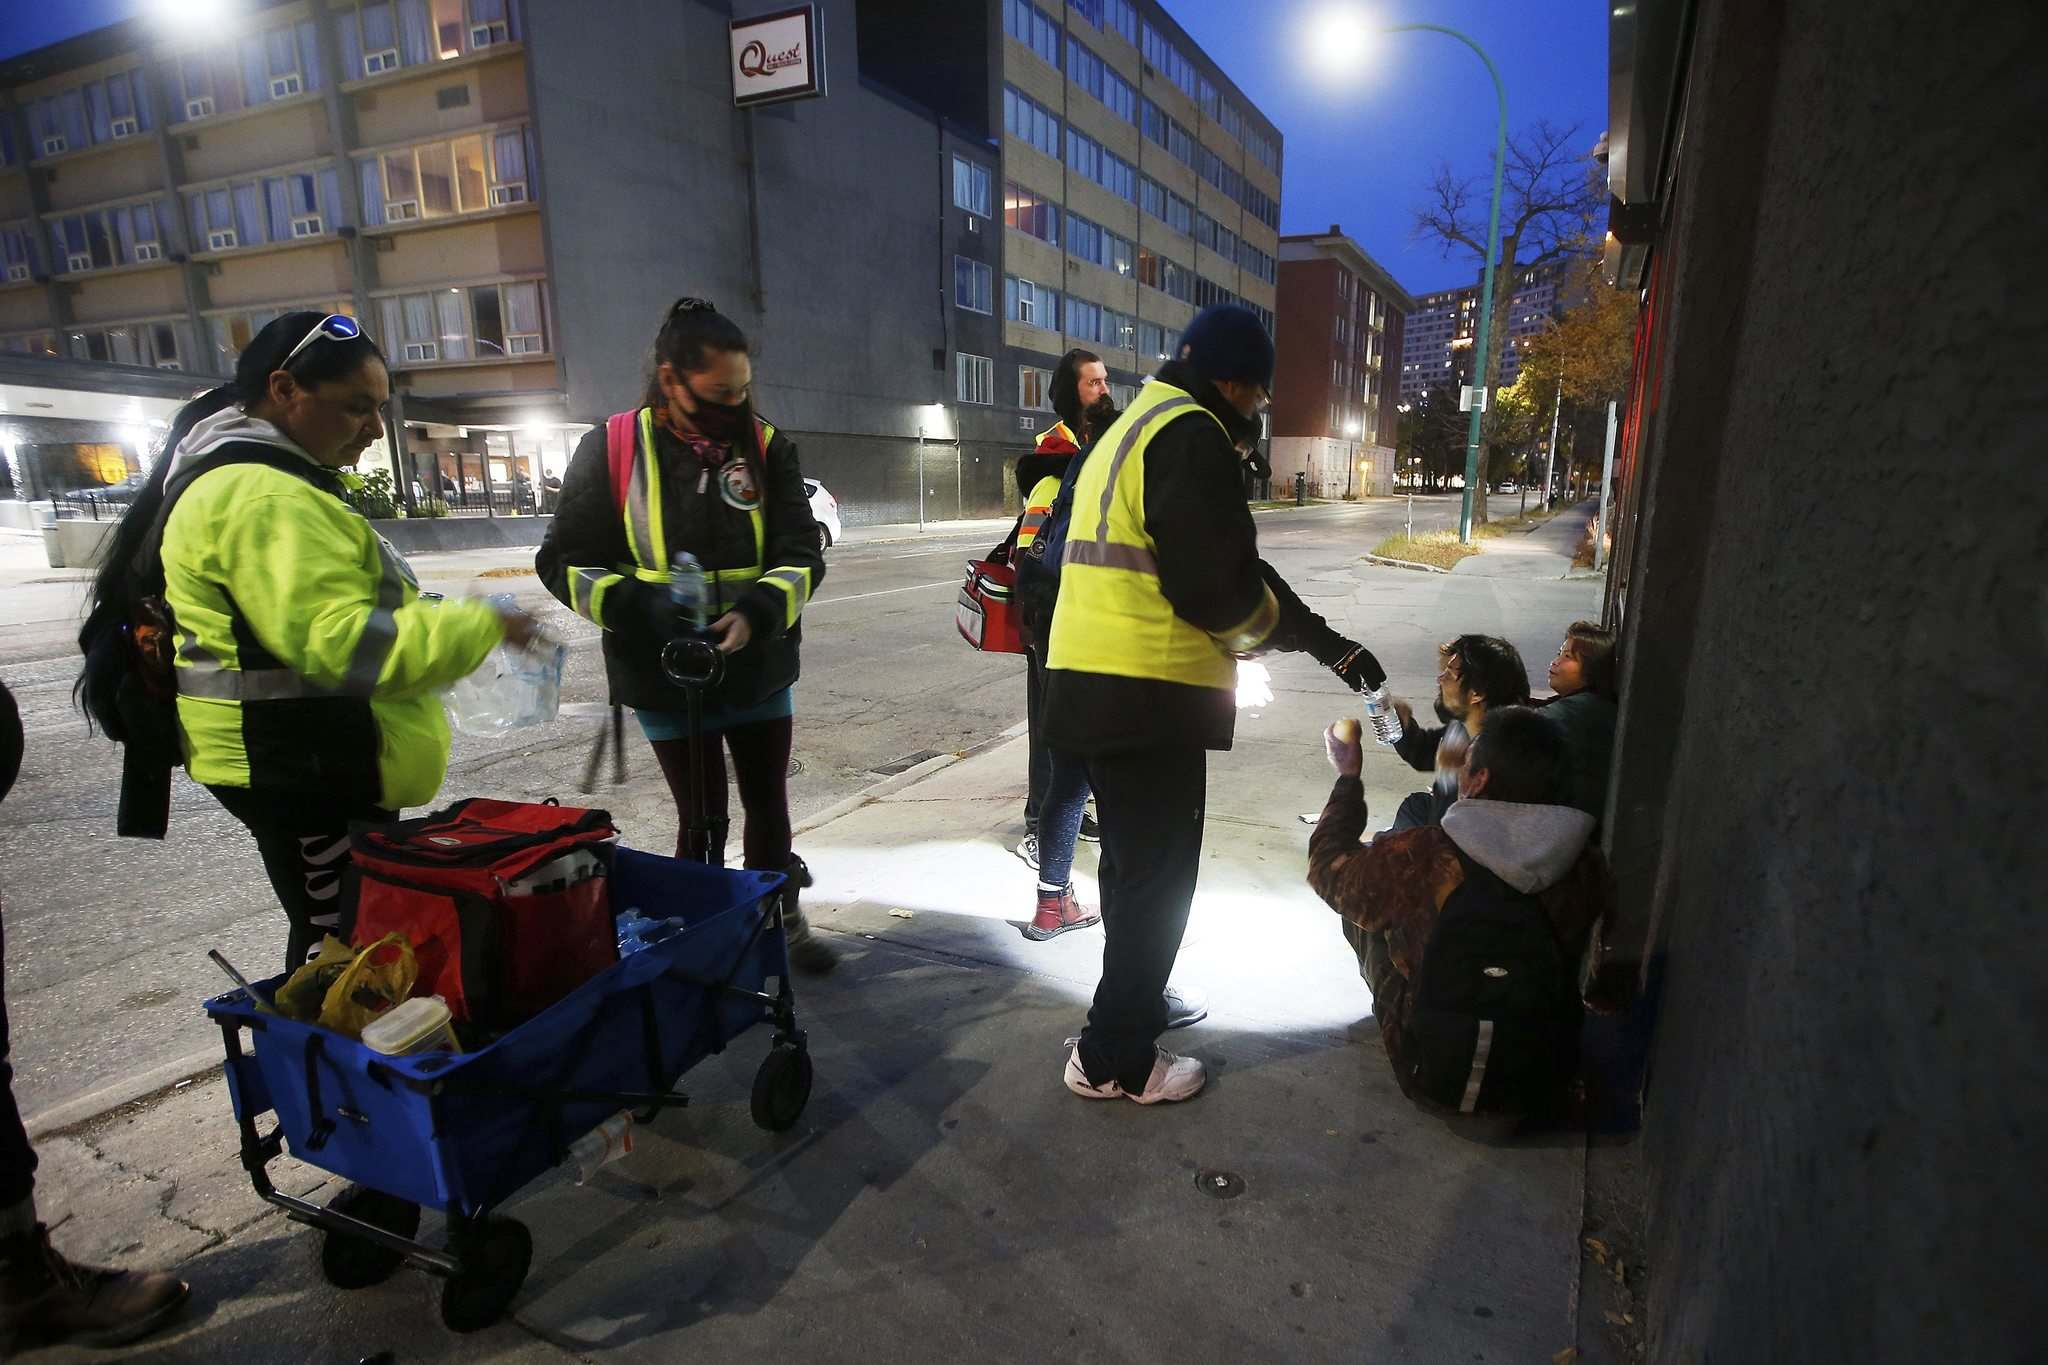 Thunderbirz volunteers hand out food and check on people's well-being.